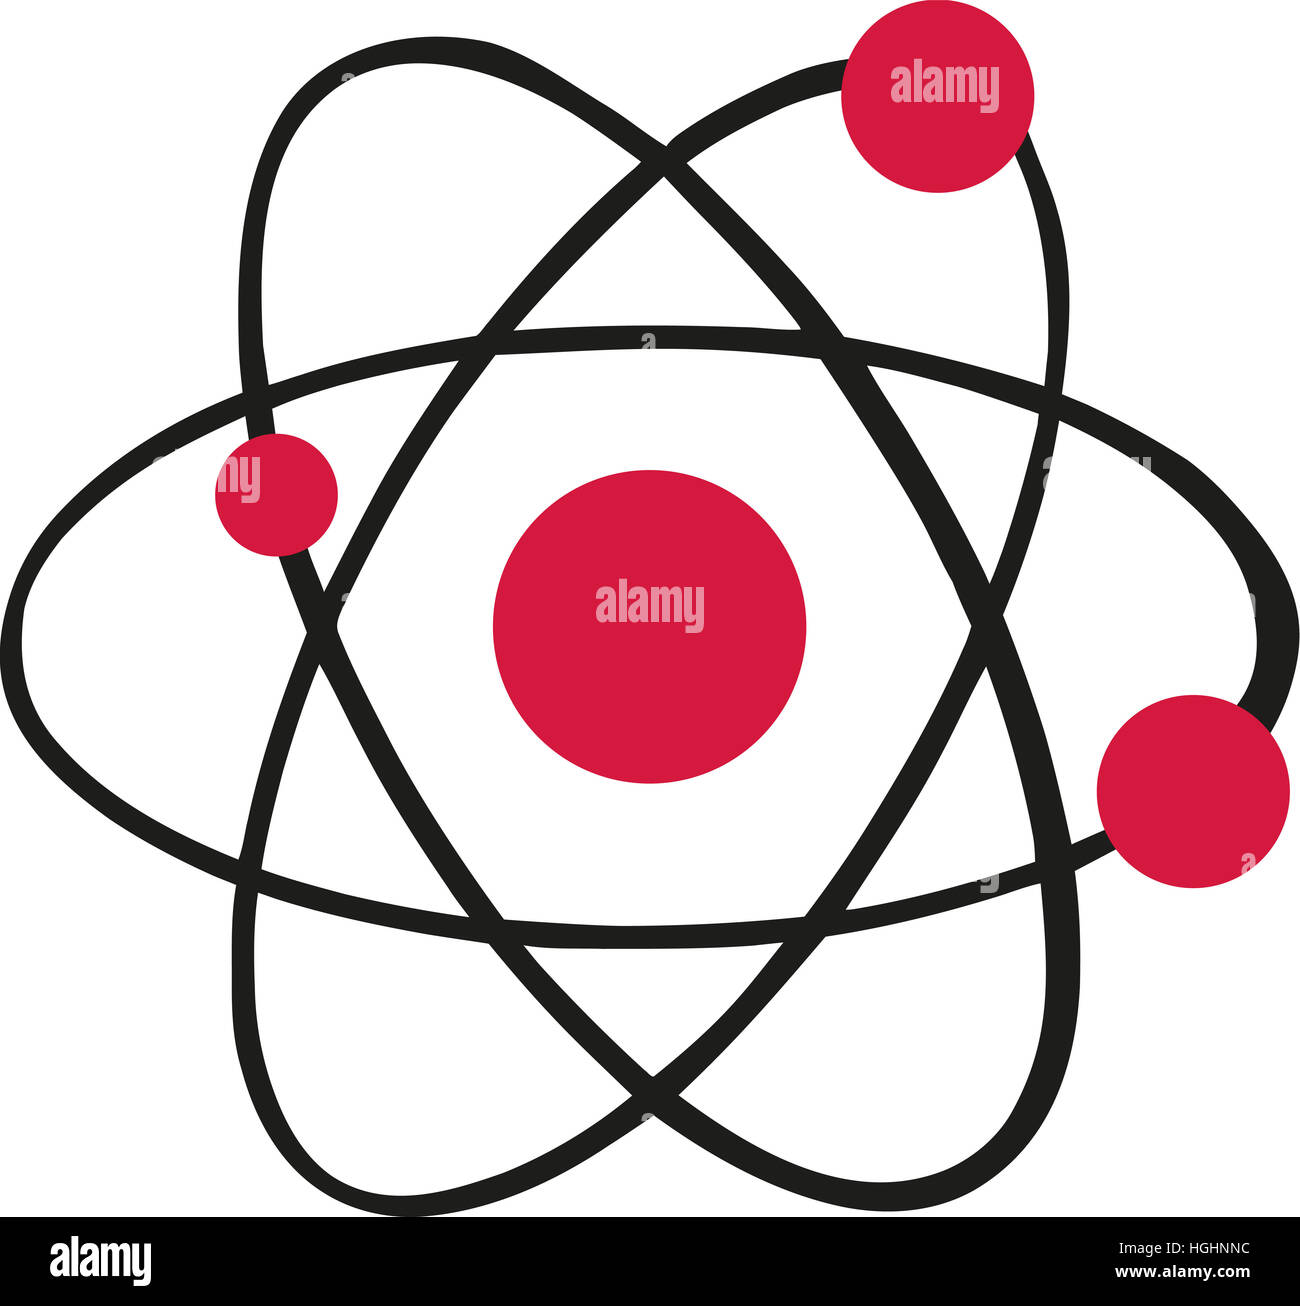 Atom icon with red atoms - Stock Image